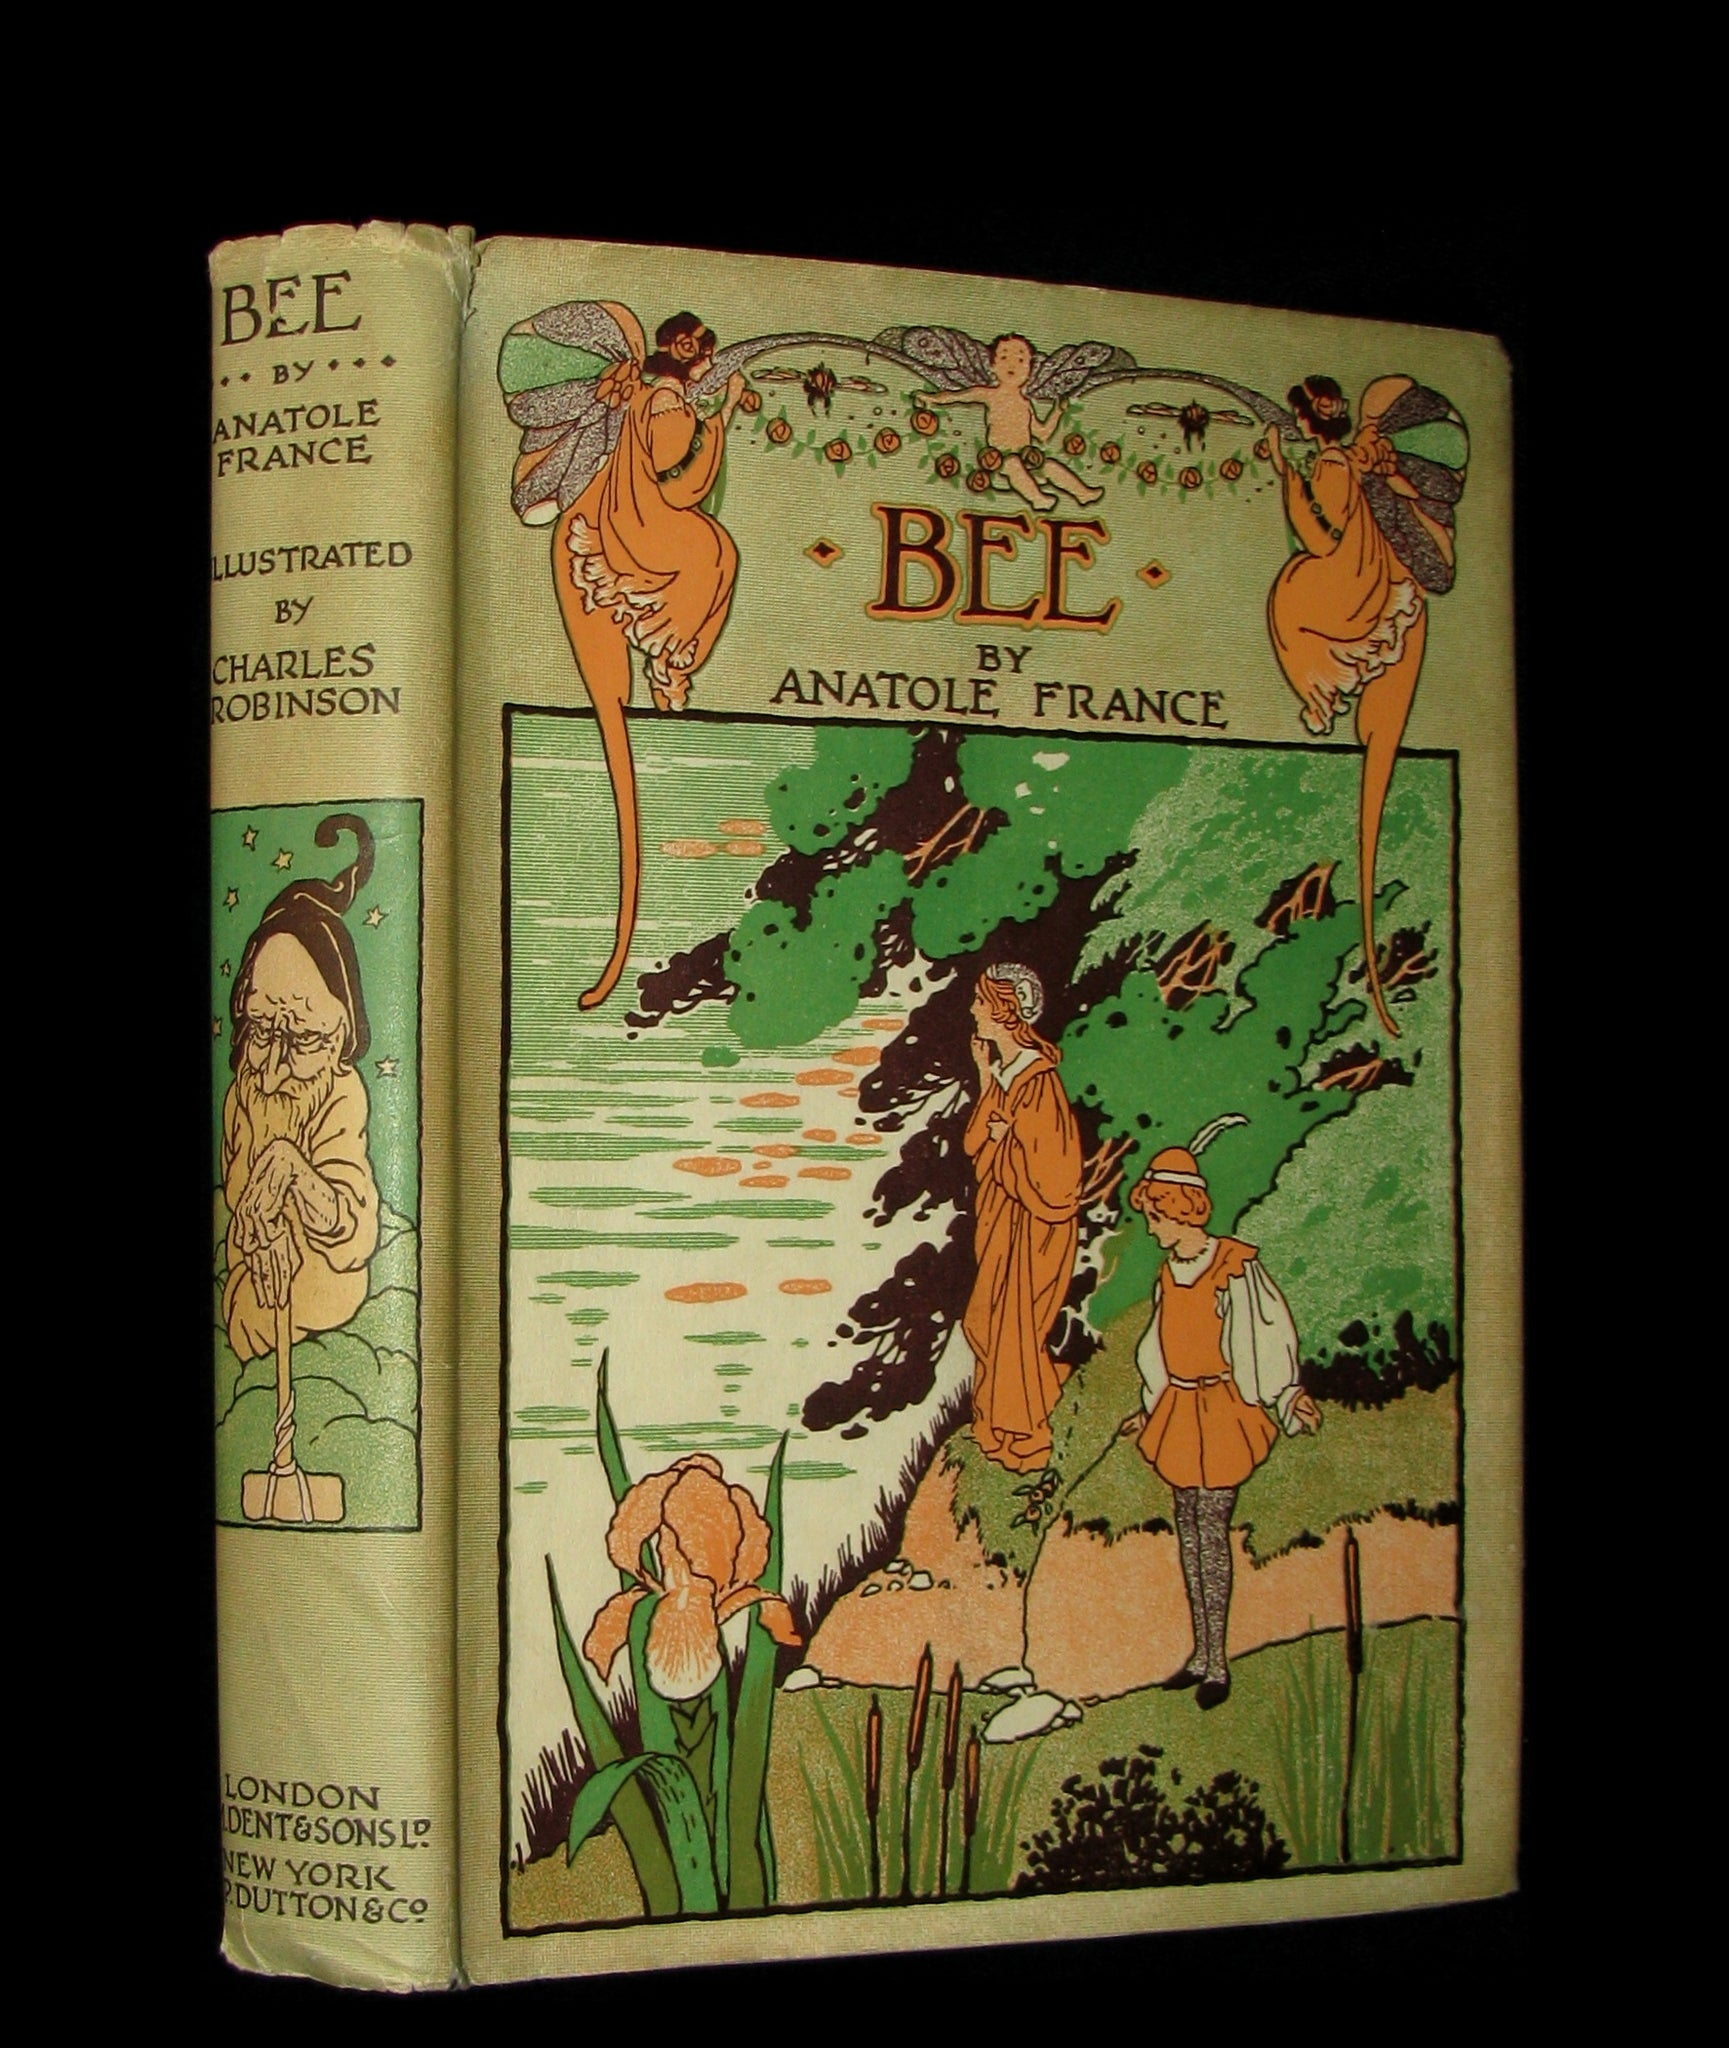 1934 Rare Book - BEE  The Princess of the Dwarfs by Anatole France illustrated by Charles Robinson.